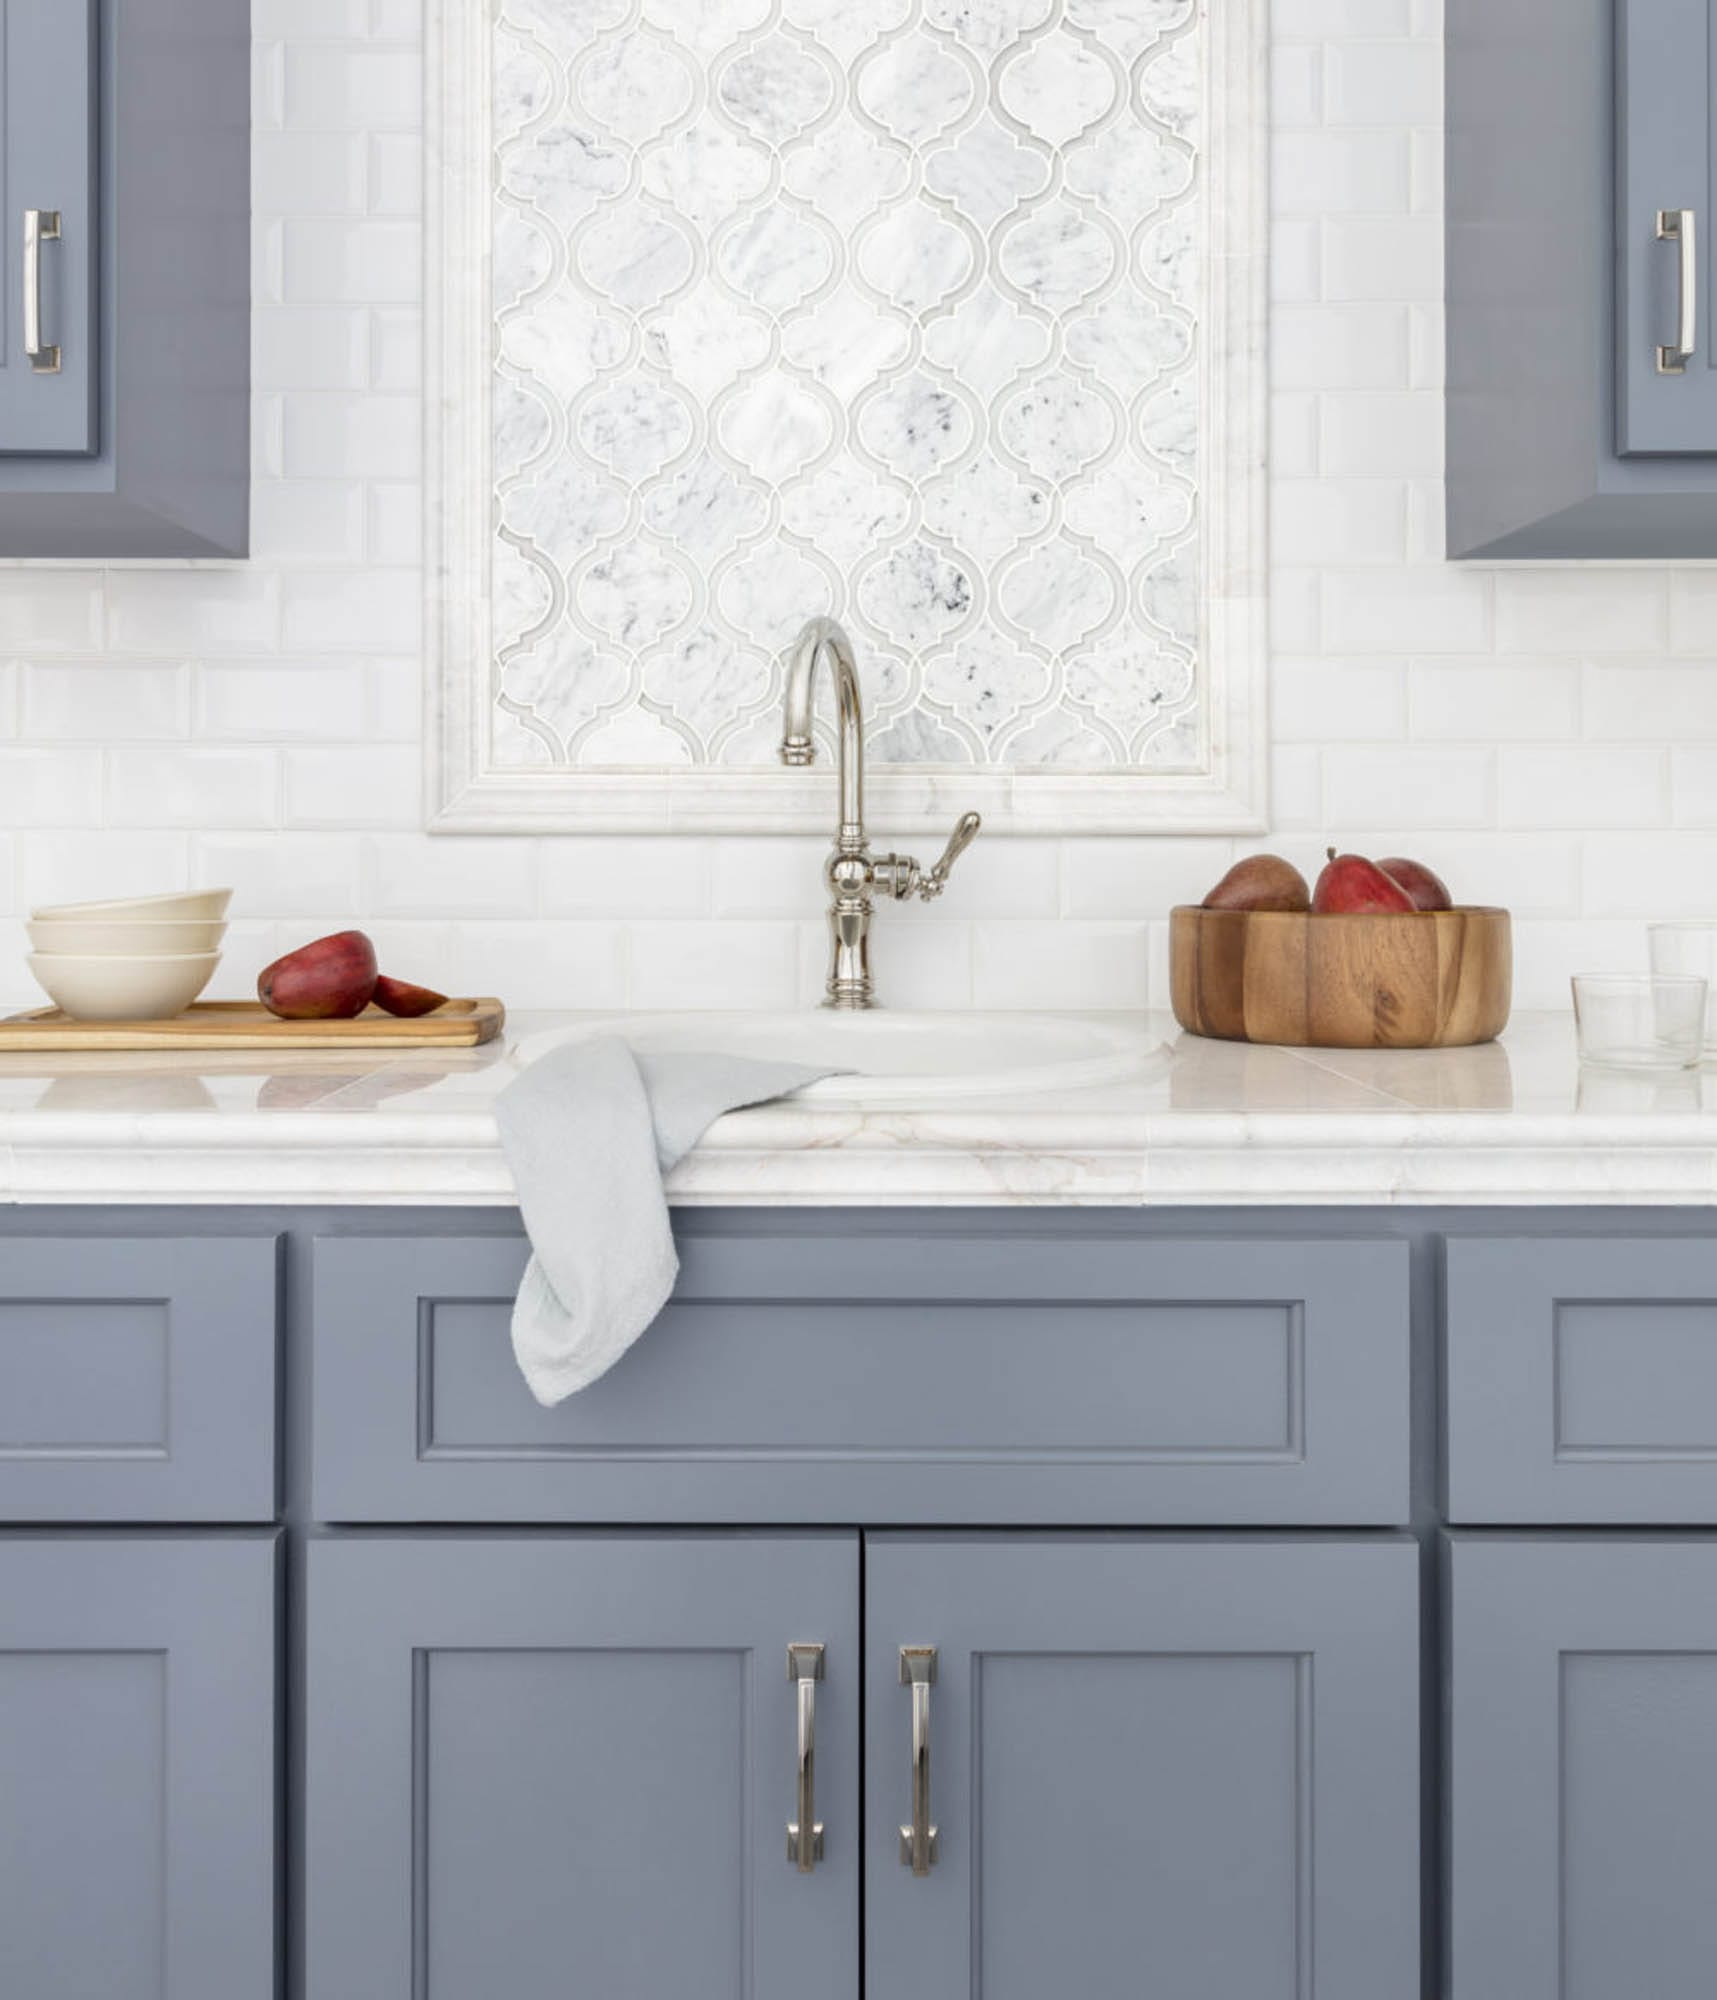 White wall tile and contrasting blue cabinets.